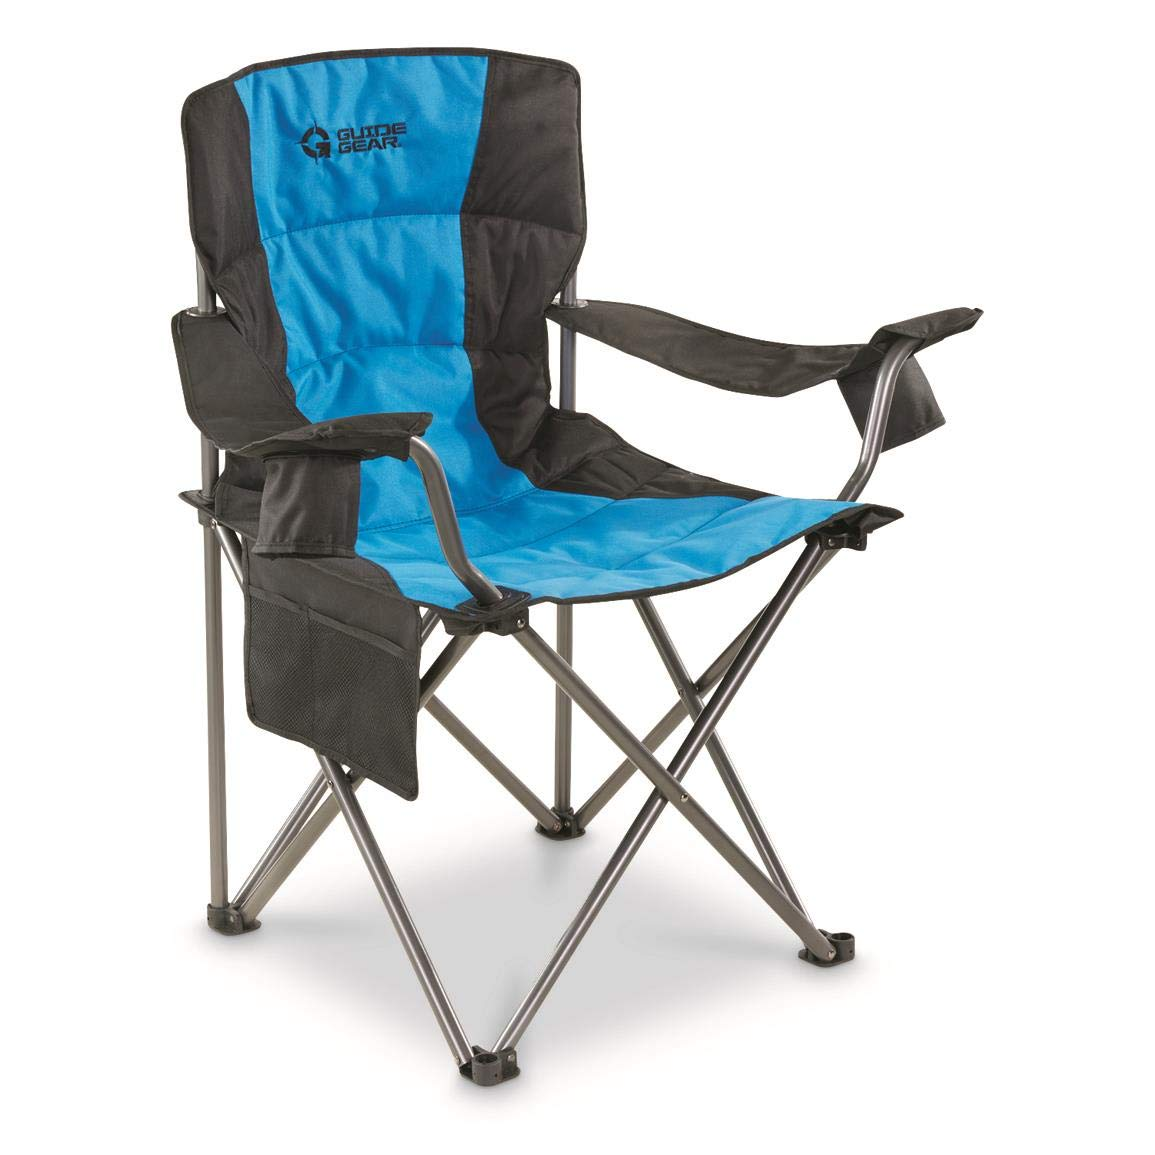 Details About 500 Lb Heavy Duty Oversized Folding Camping Chair Xl Large Cup Holder Padded